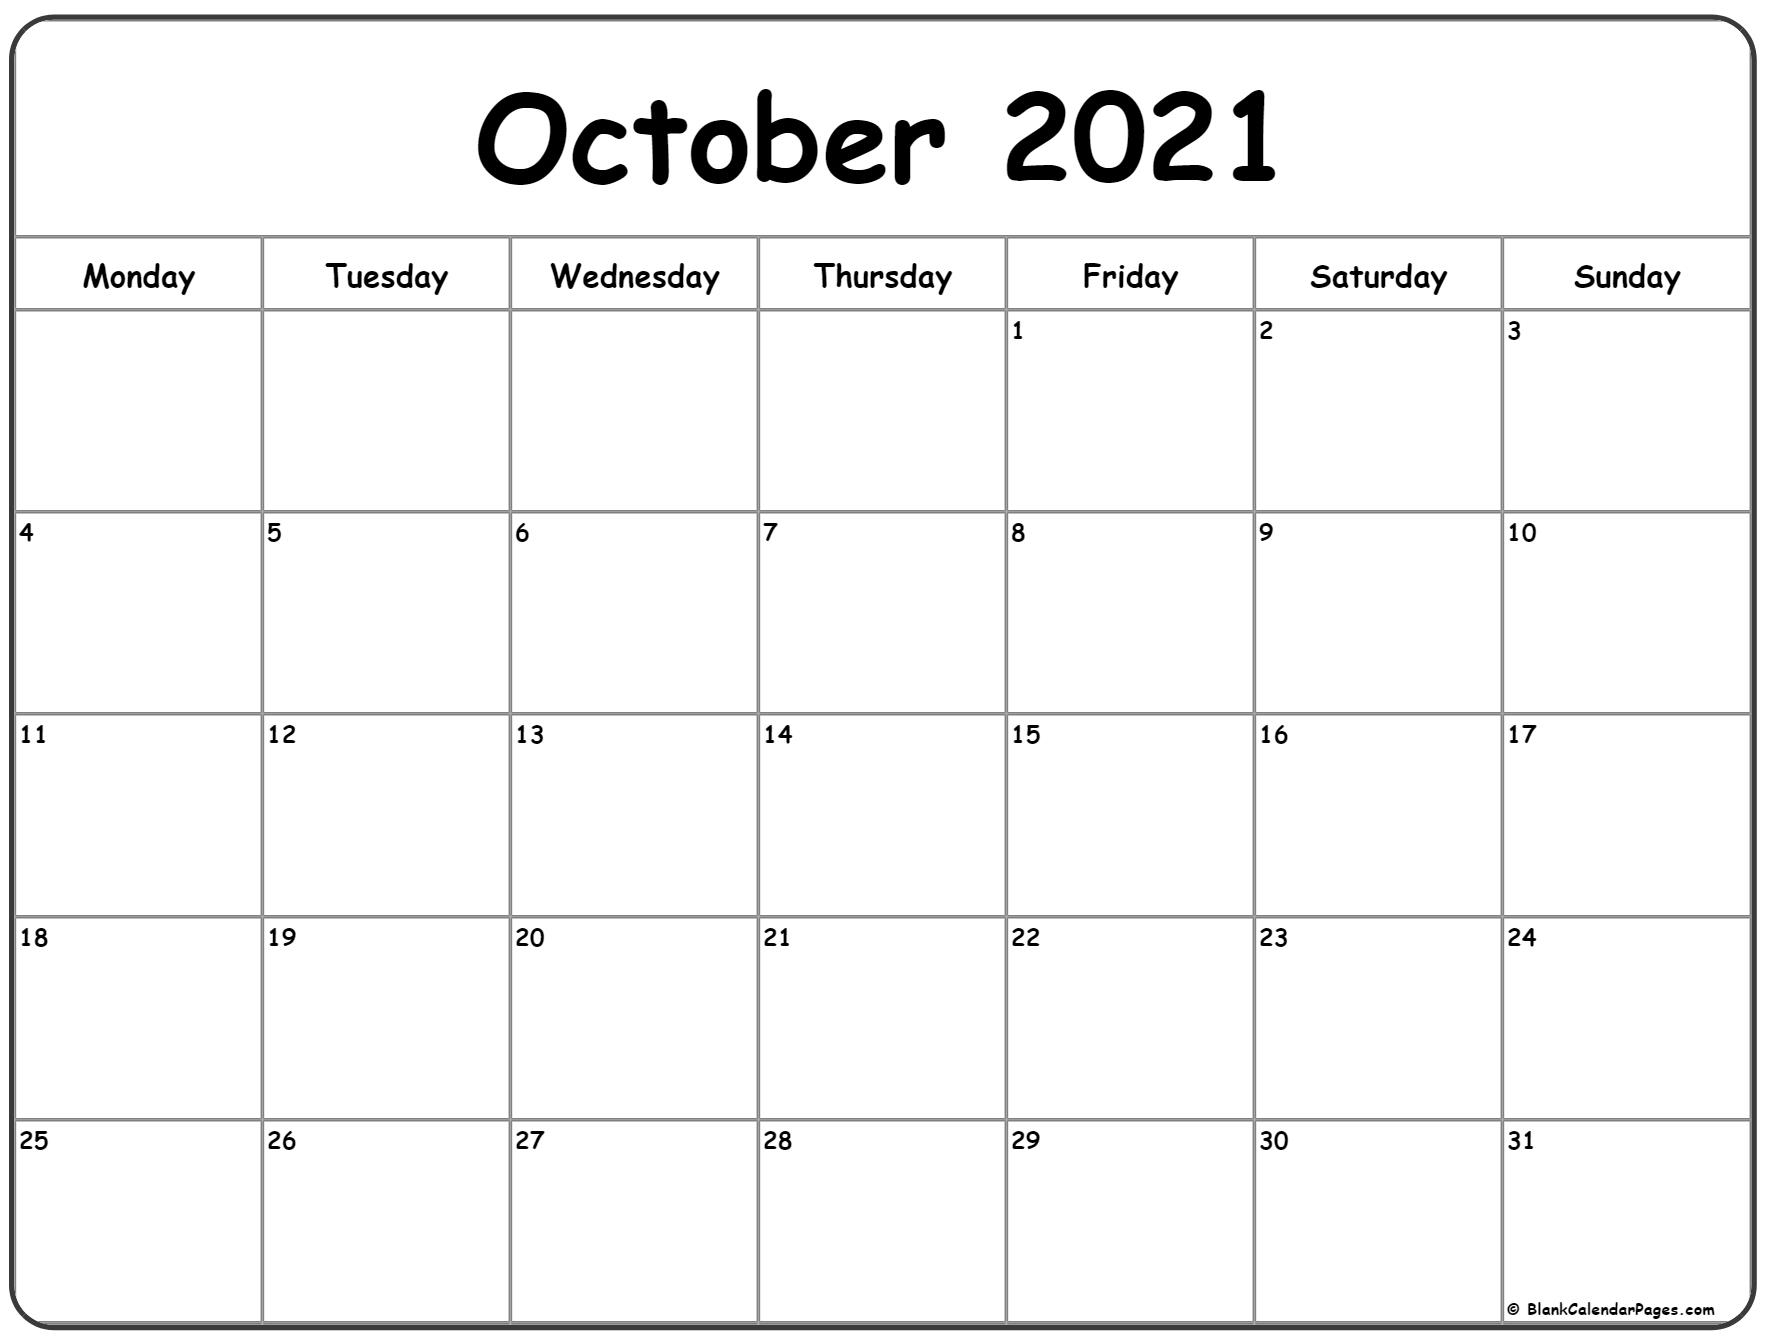 October 2021 Monday Calendar | Monday To Sunday